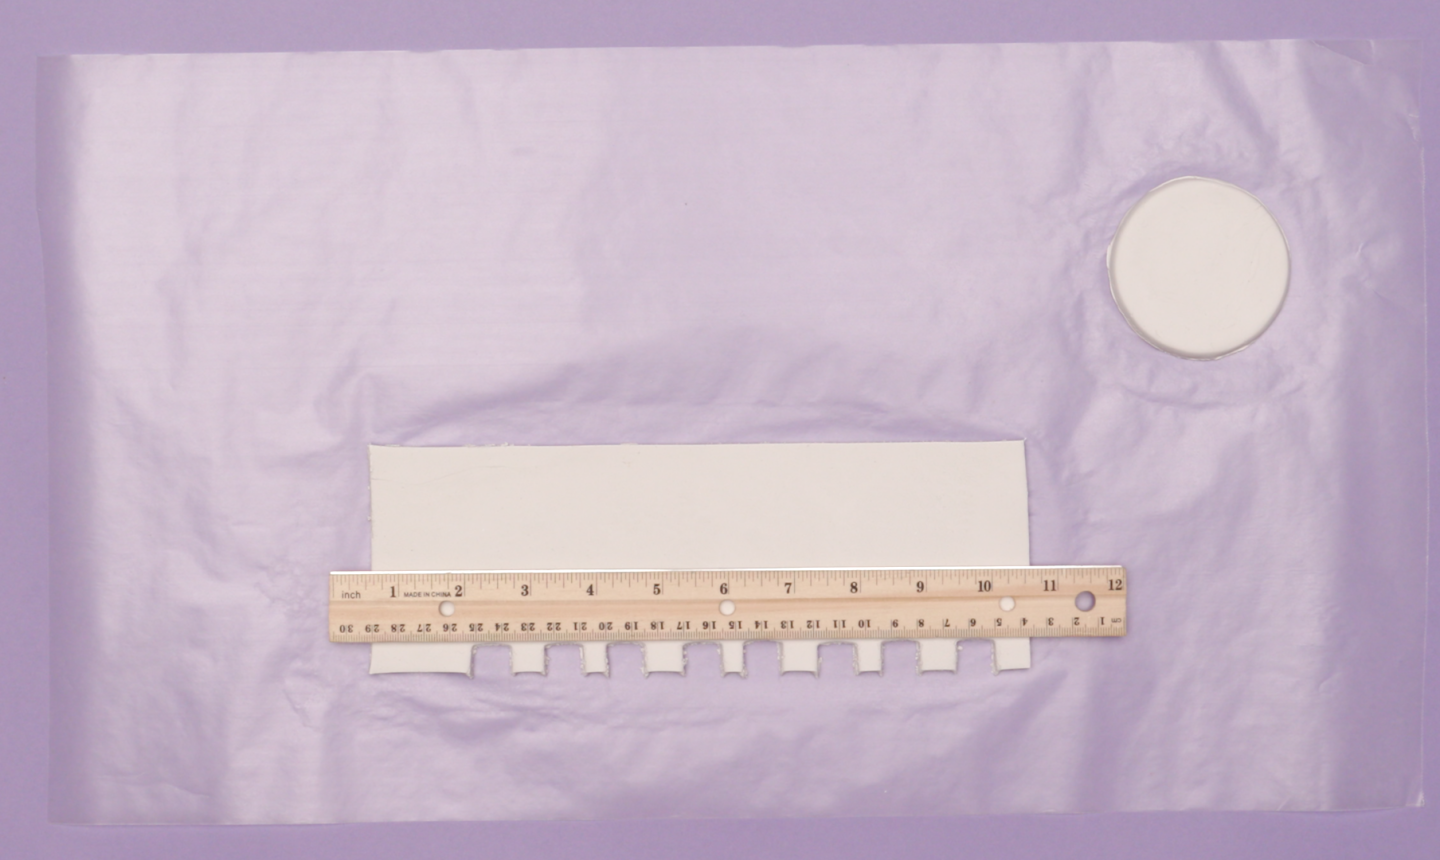 Pieces of clay cut out with a ruler